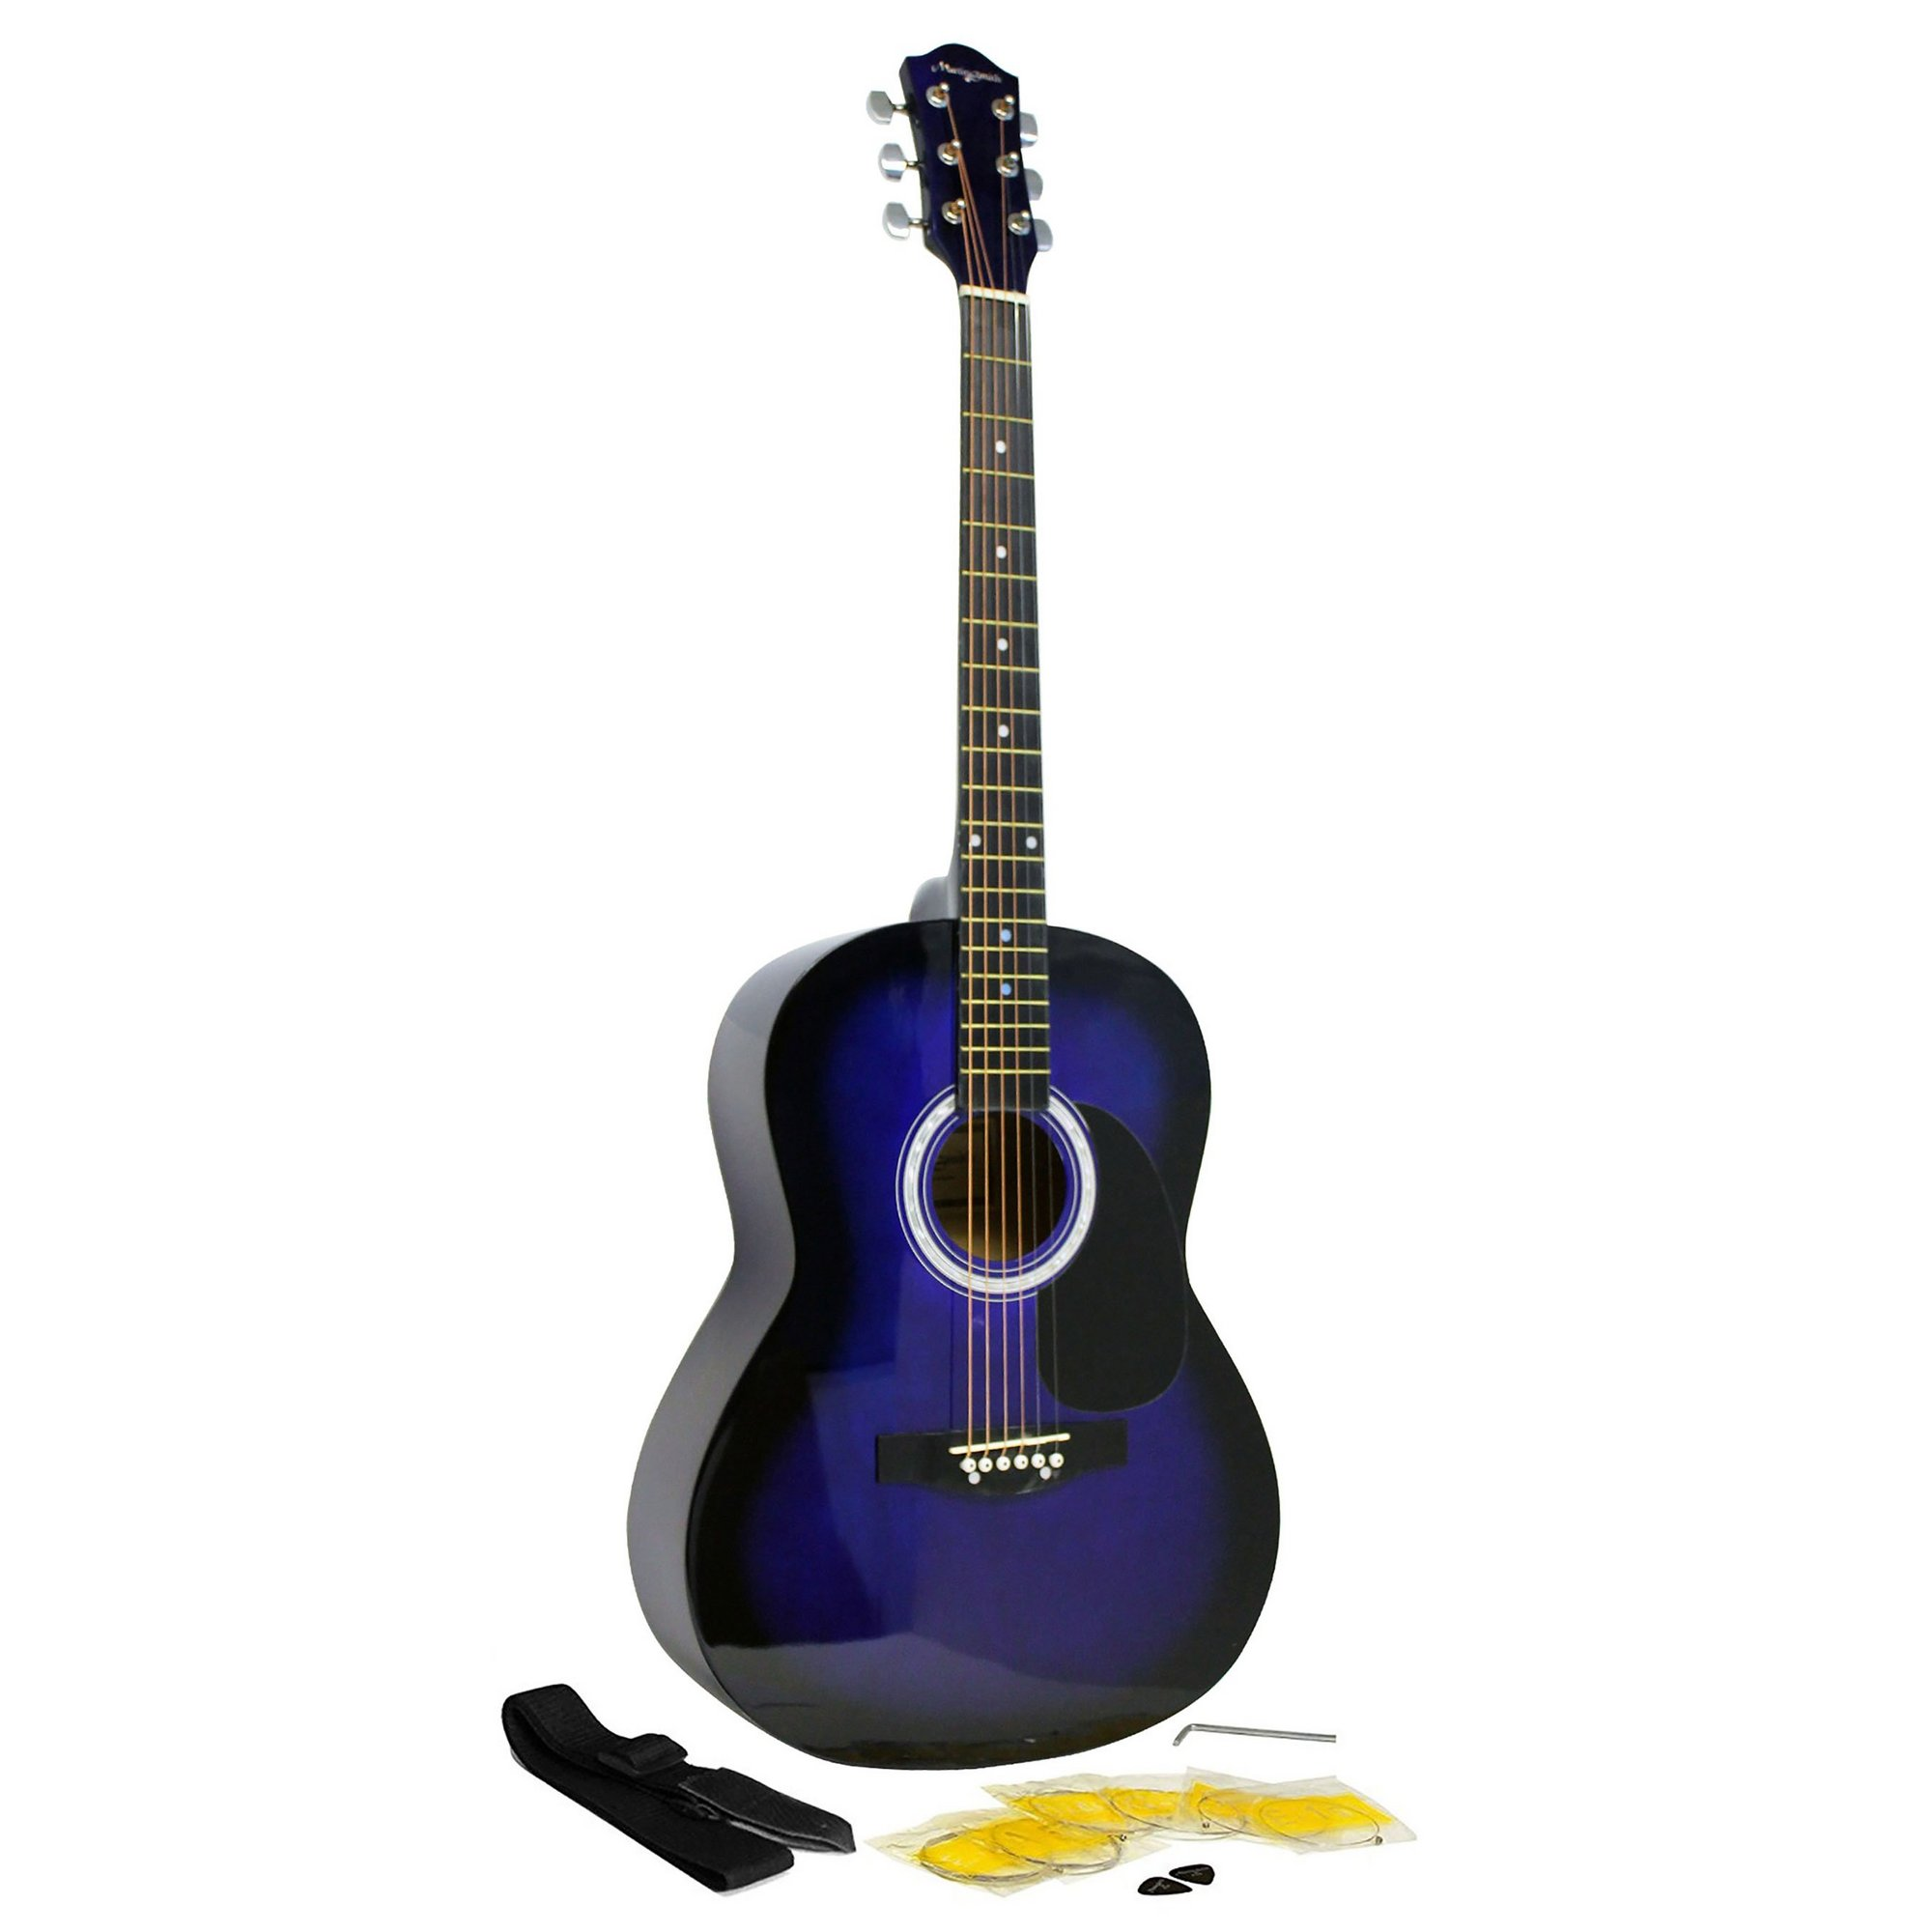 Image of Martin Smith Full Size Guitar